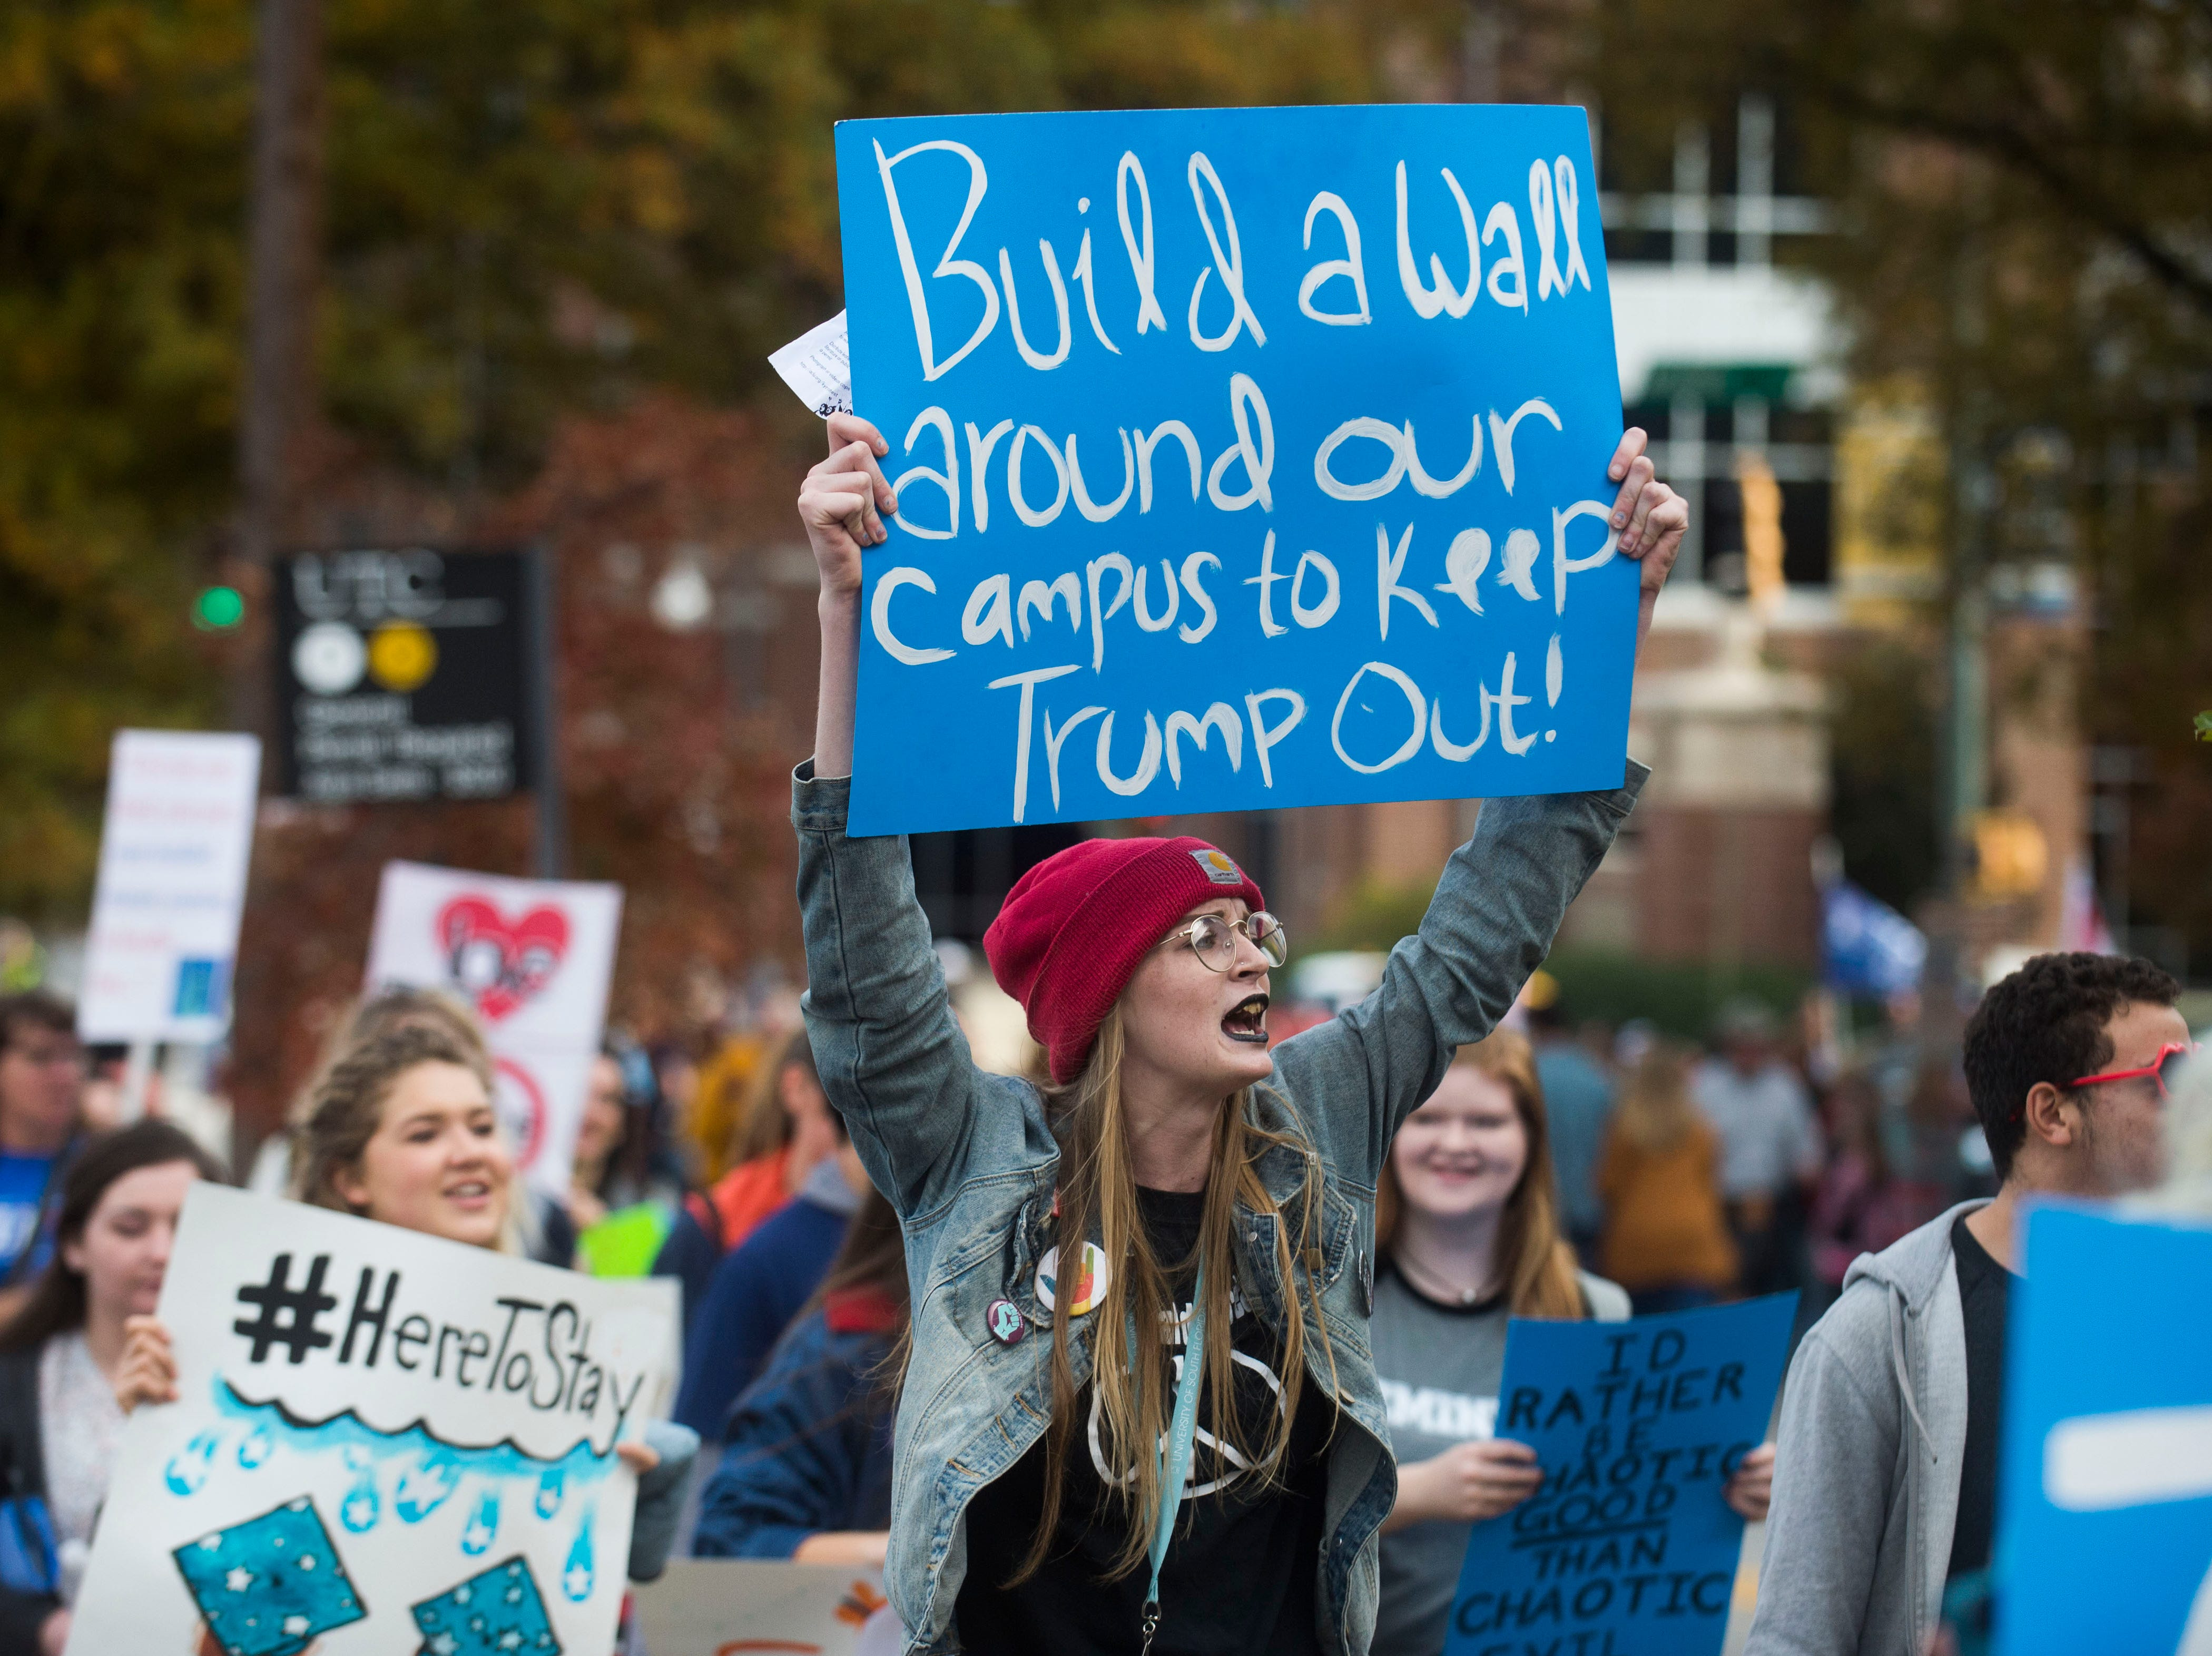 University of Tennessee Chattanooga students march towards a protest before a Donald Trump rally in support of U.S. Rep. Marsha Blackburn for the U.S. Senate at McKenzie Arena in Chattanooga, Sunday, Nov. 4, 2018.